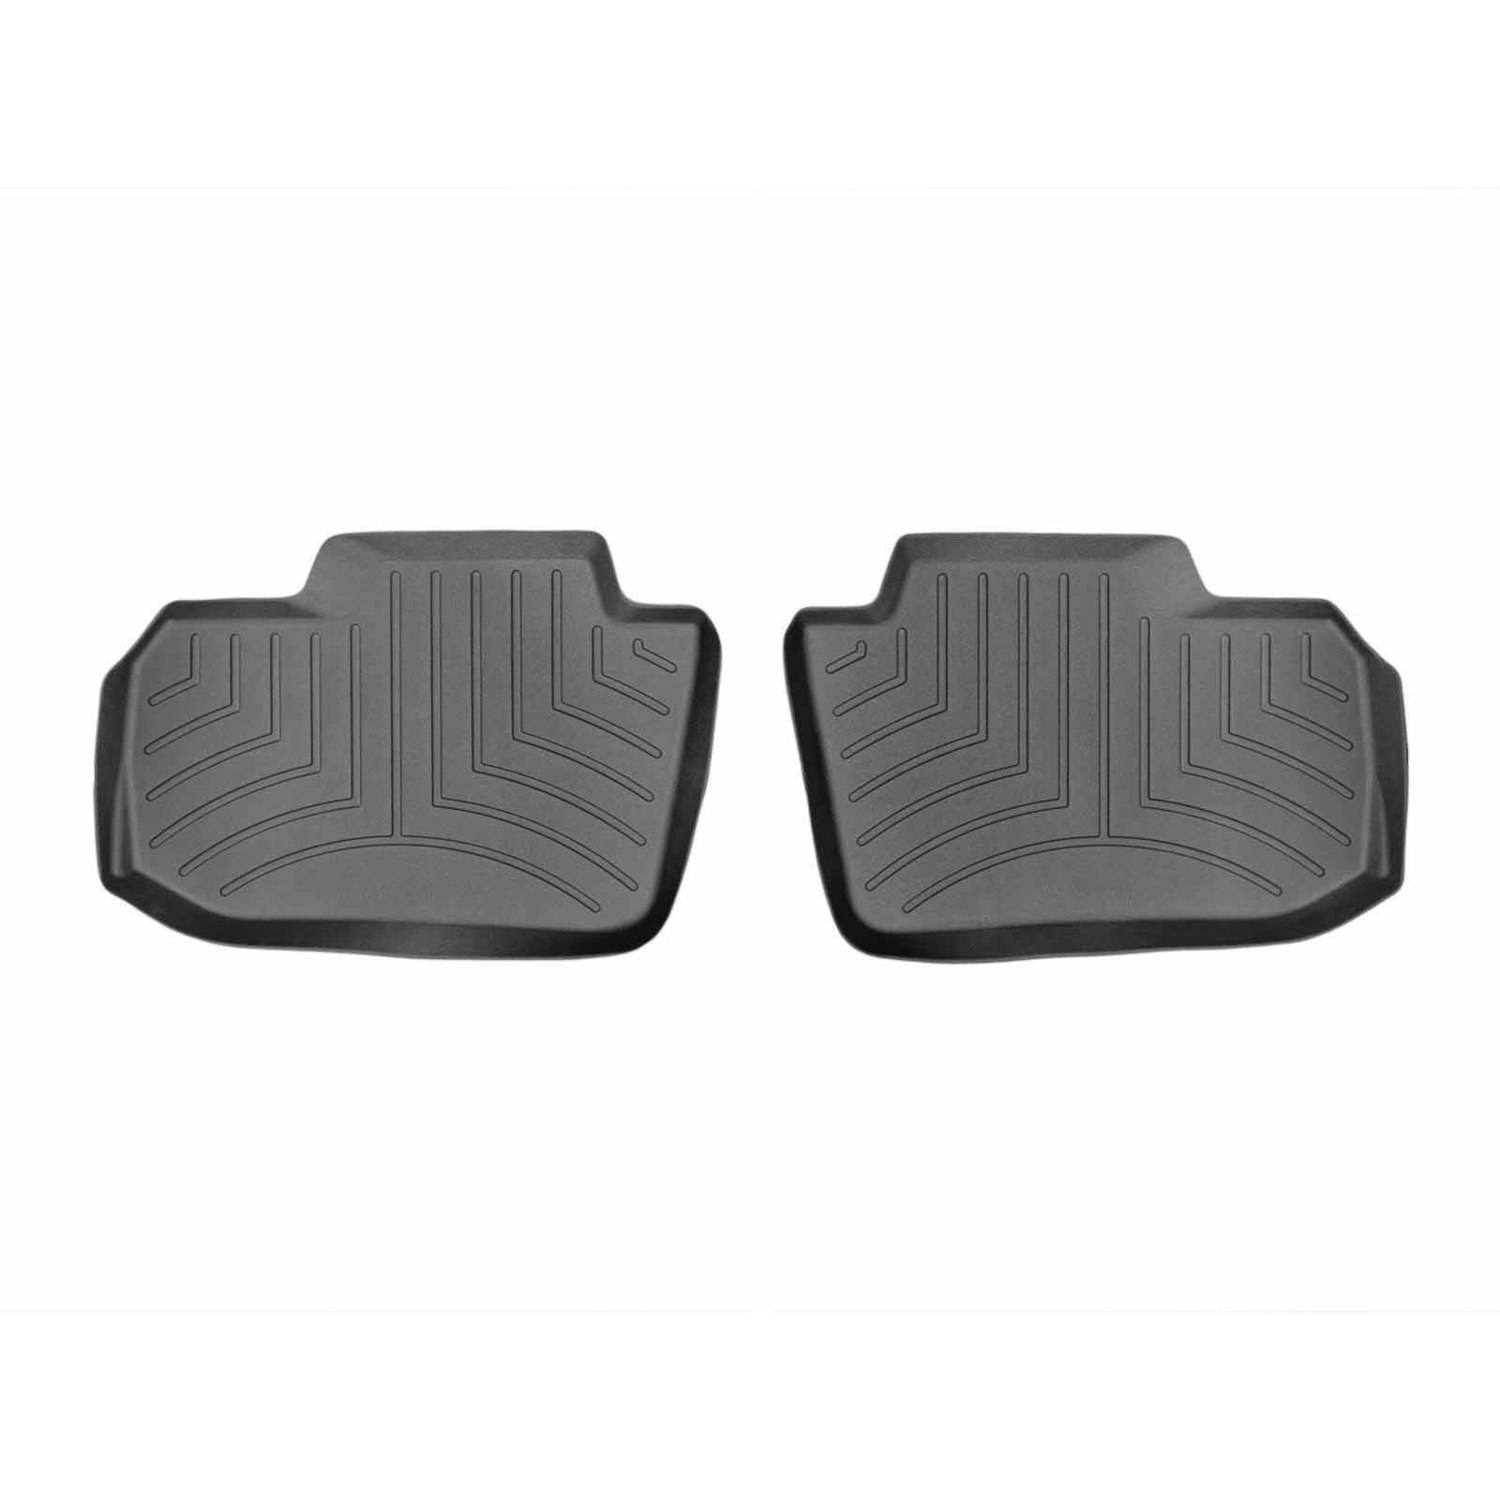 Weathertech mats walmart - About This Item